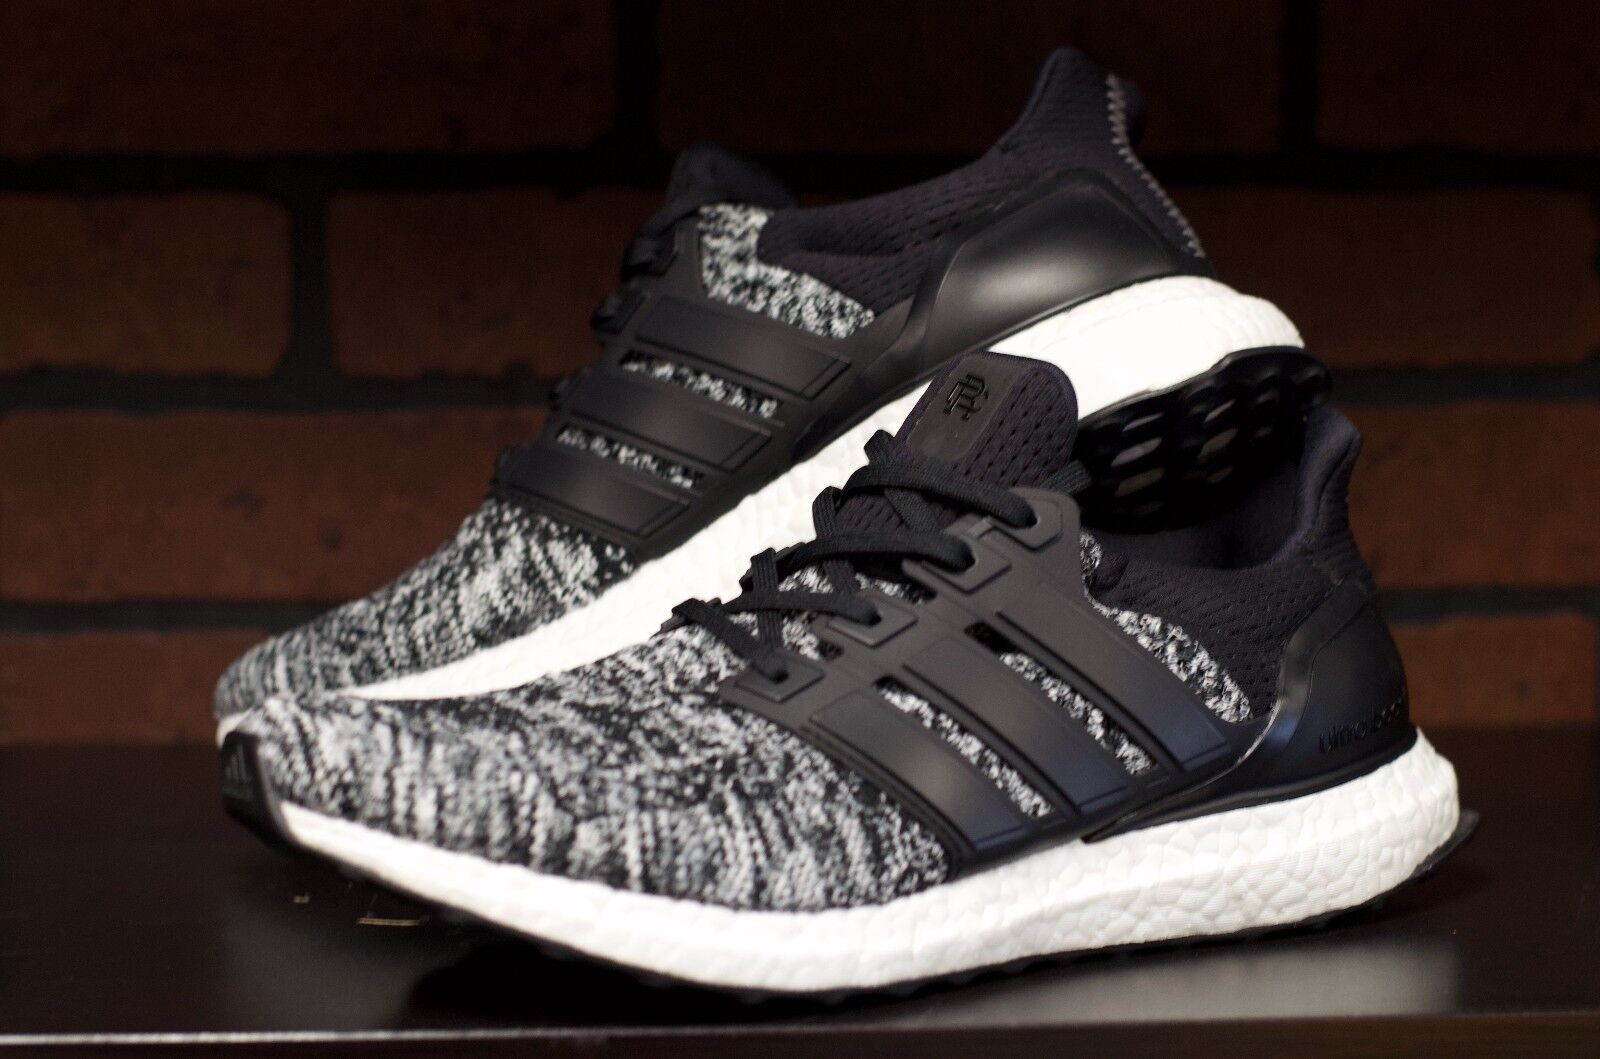 Adidas x Reigning Champ Ultra Boost Black White Size 10.5